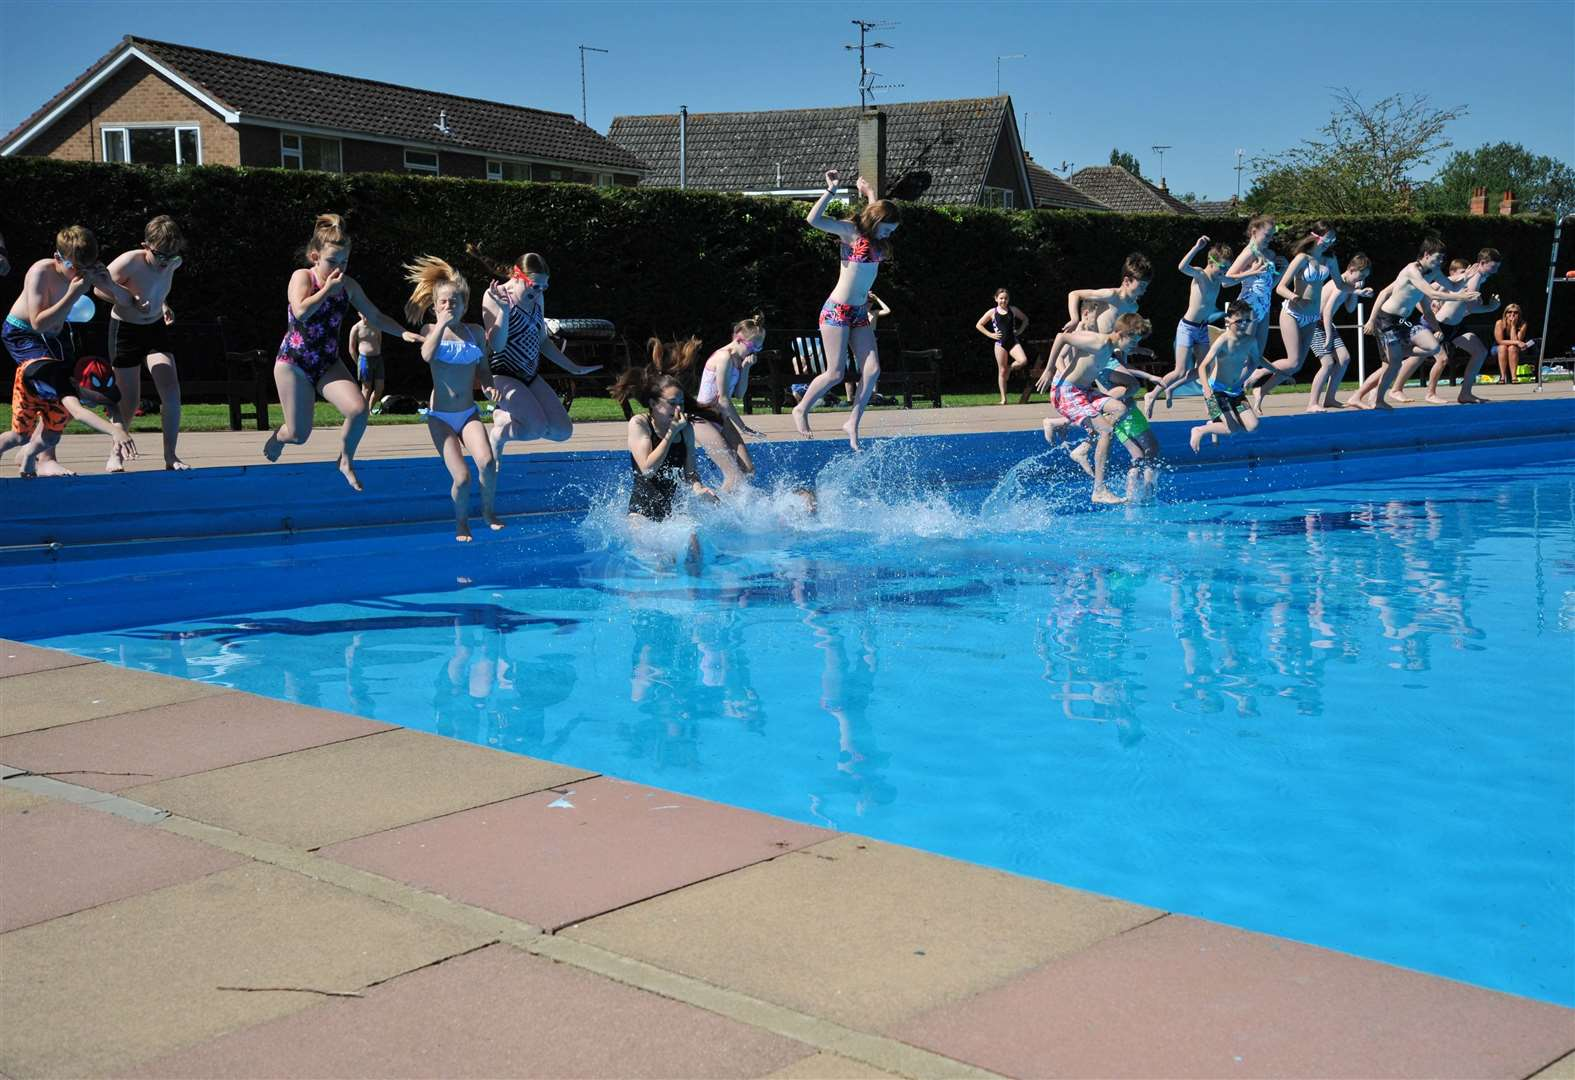 Outdoor pool opens for 100th season